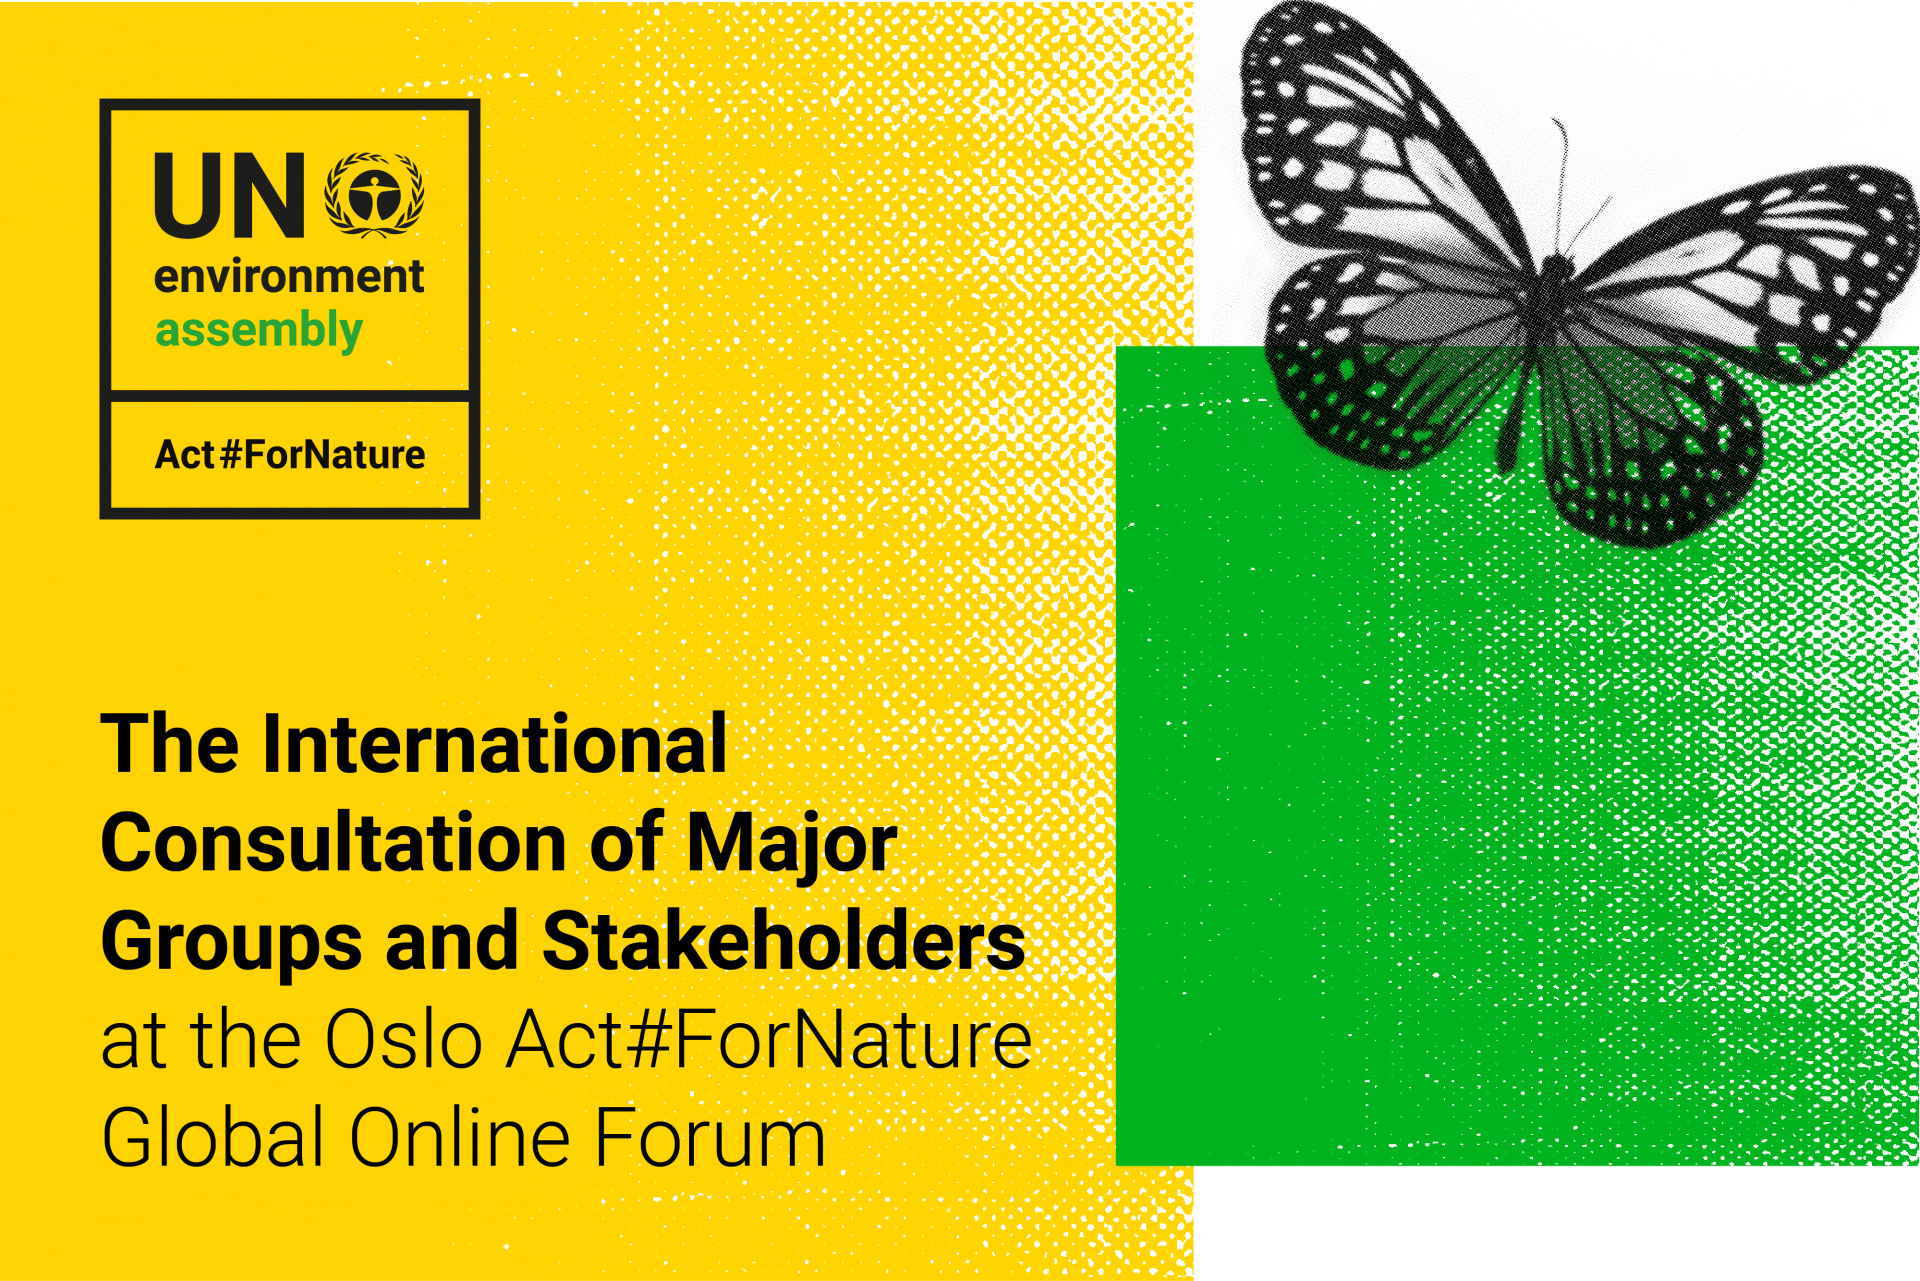 Watch the live stream from the global consultation on environment here